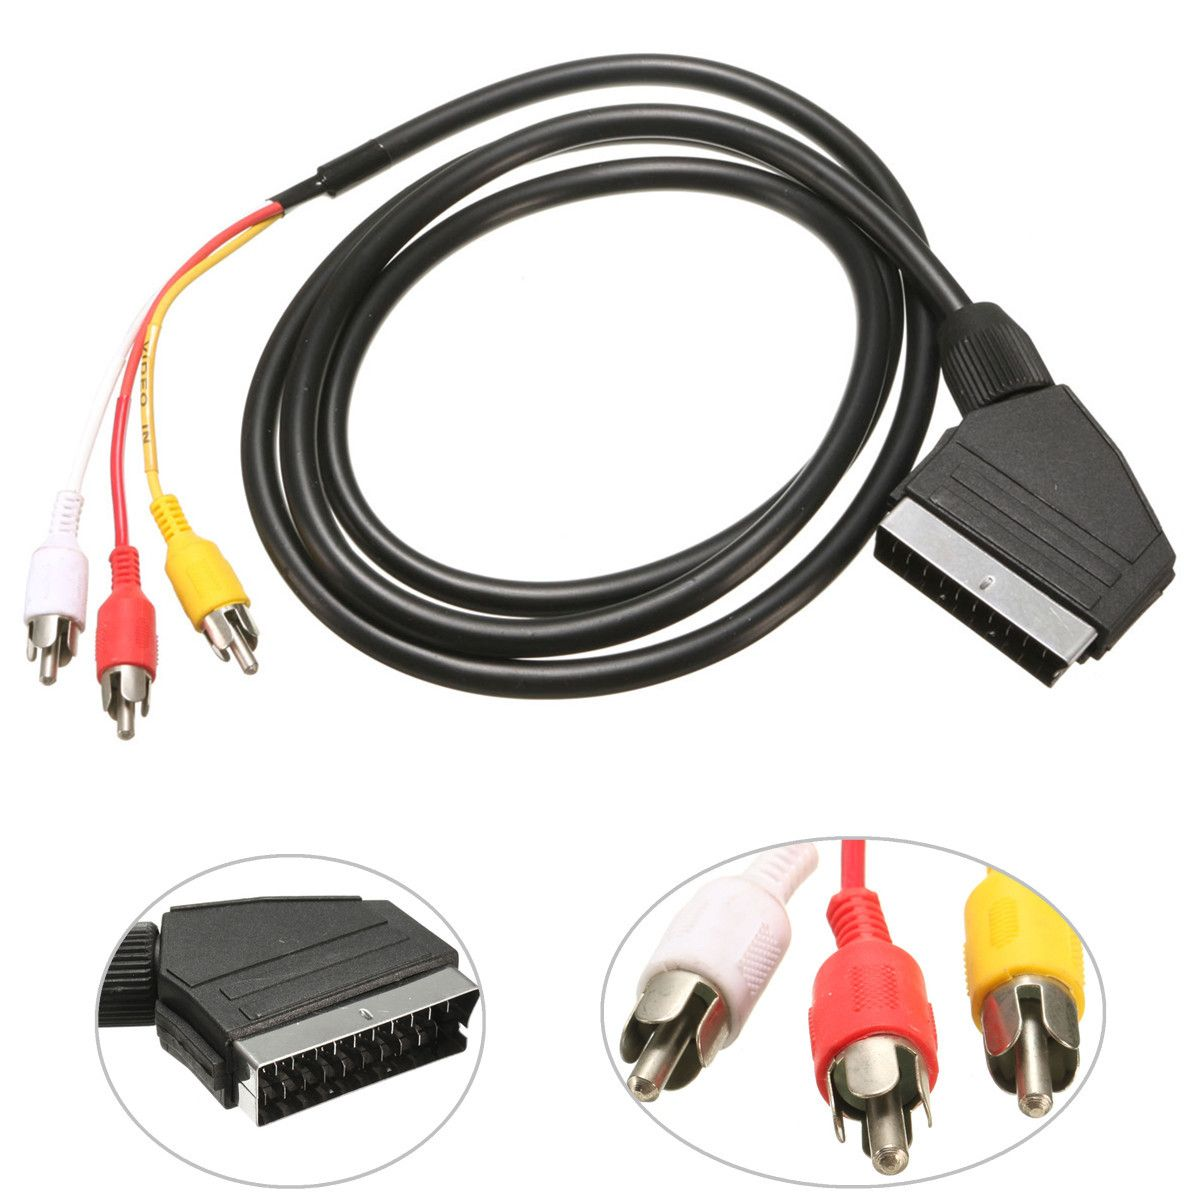 Car styling 15m 21 pin scart to 3 rca plugs phono lead cable car styling 15m 21 pin scart to 3 rca plugs phono lead cable audio video sciox Gallery